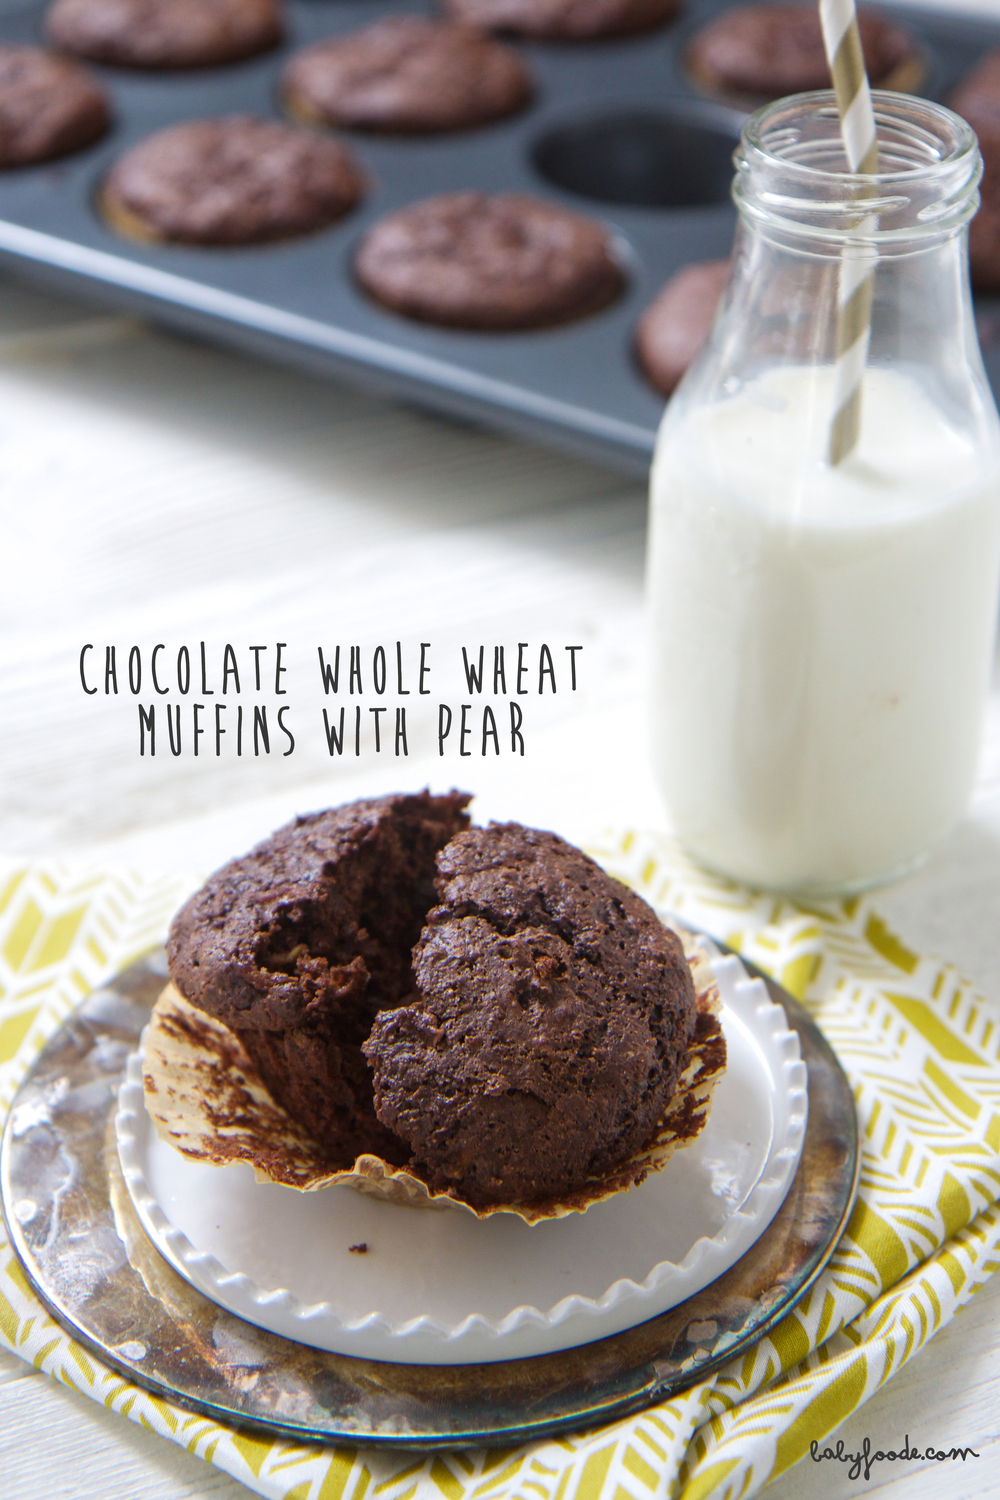 These chocolate and pear whole wheat muffins are amazing! They are so easy to make, and filled with healthy, whole food ingredients - you can't help but feel great feeding this to your toddler or big kid for breakfast, and afternoon treat, or an on the go snack. #healthybaking #muffins